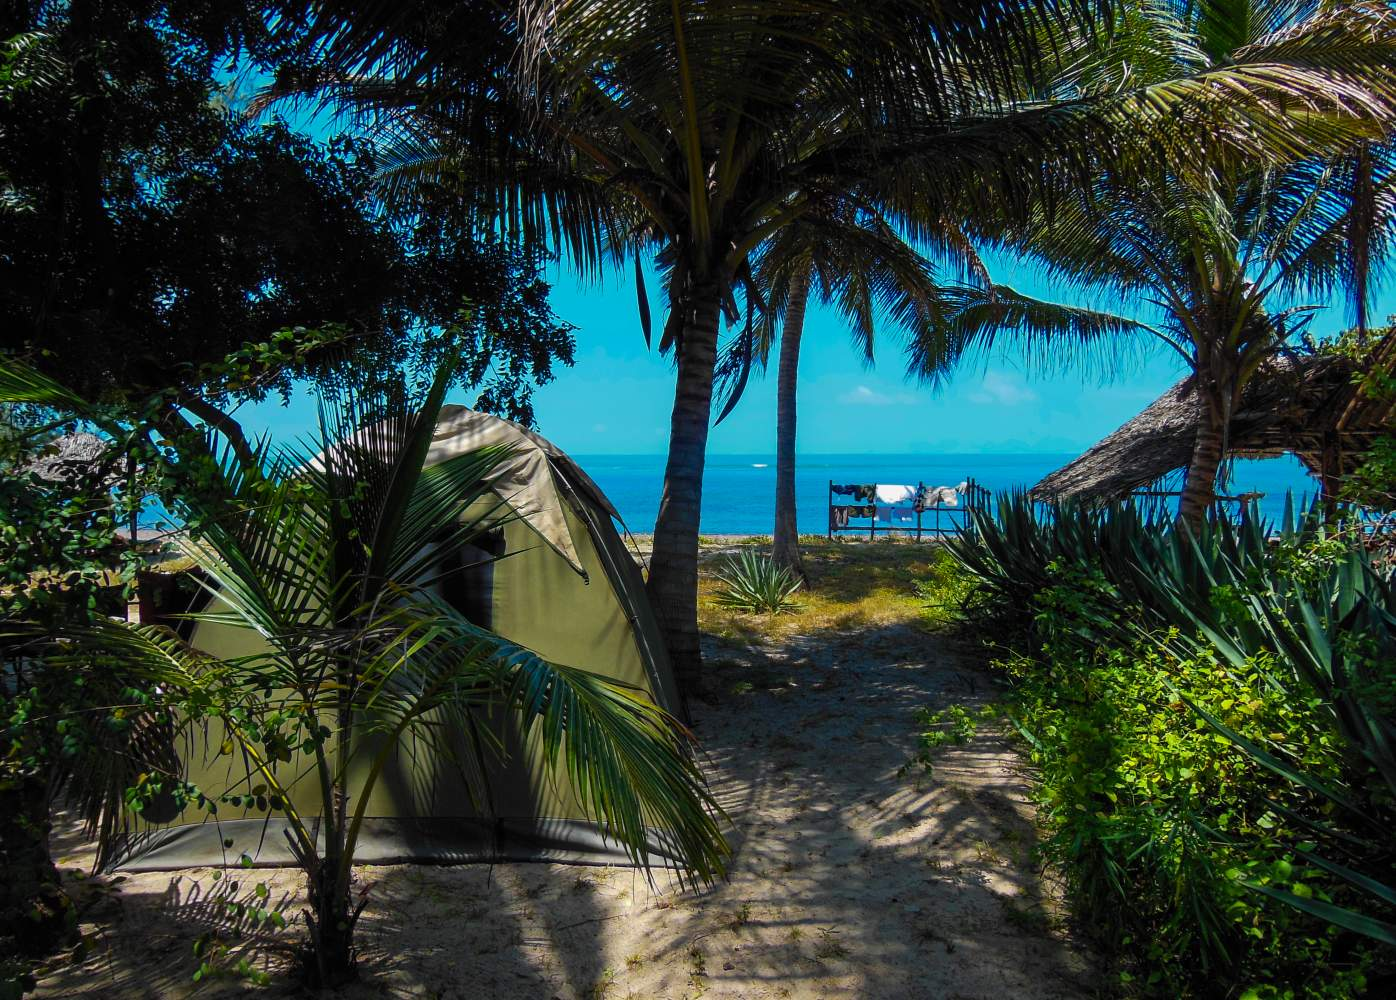 Tanganyika See Safari Reise Expedition Camping